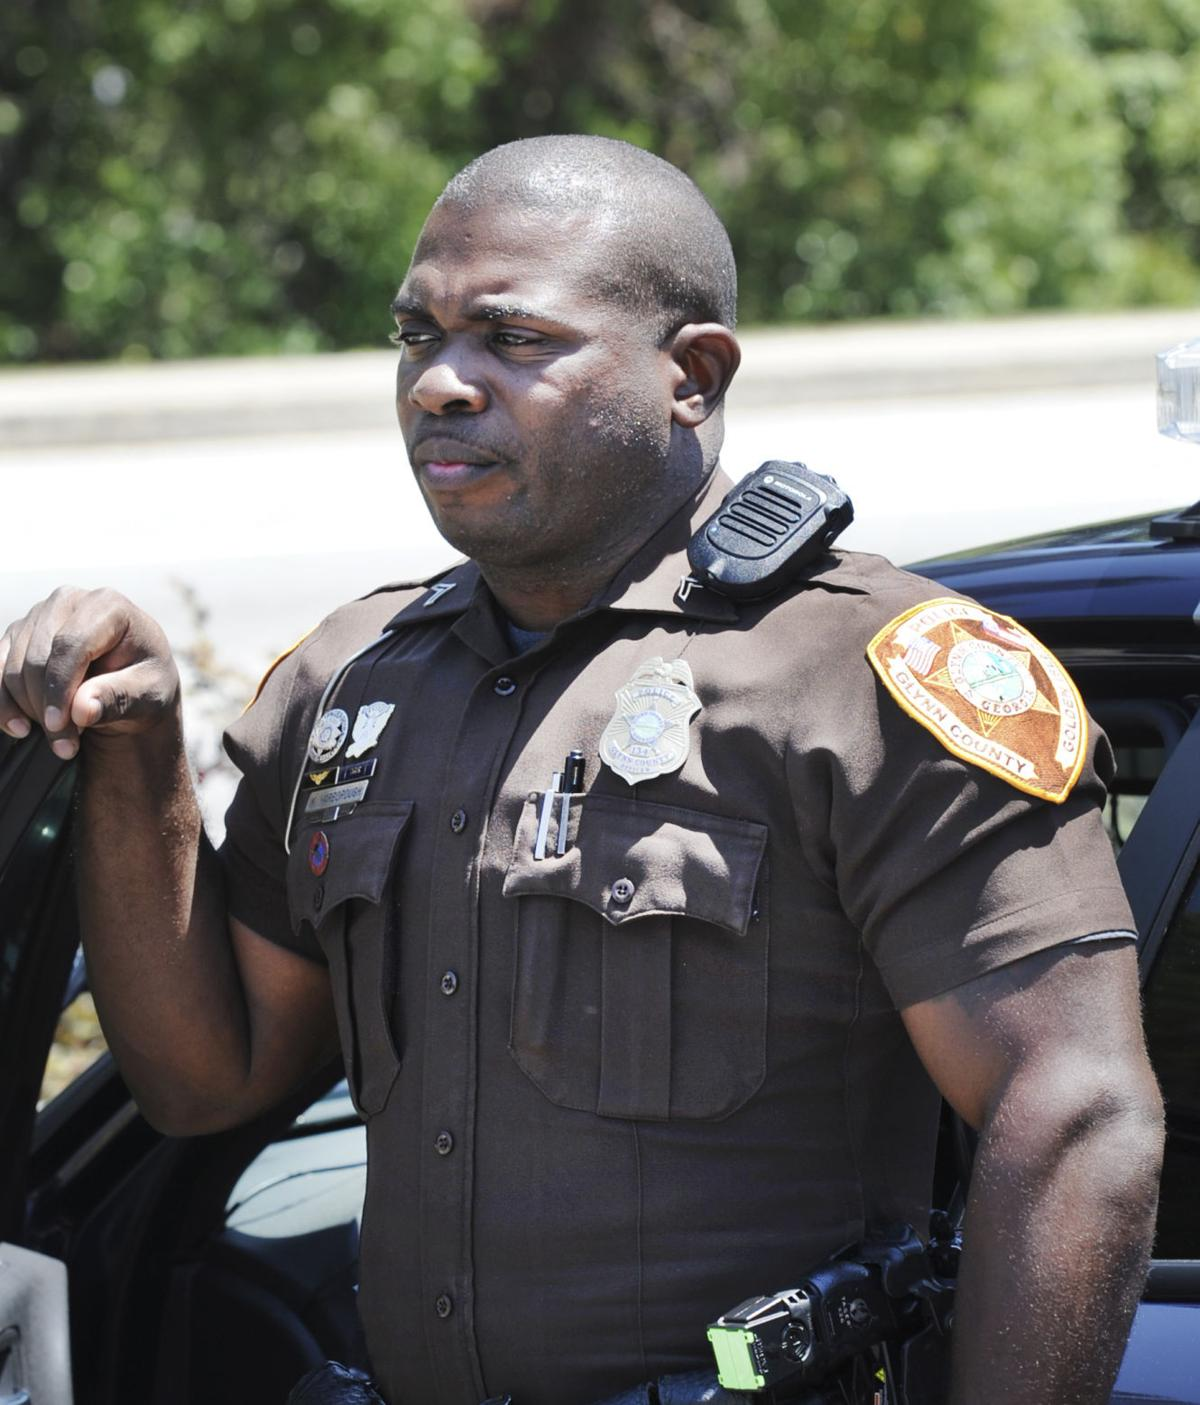 Glynn County Officer's Drug Expertise Earns Recognition